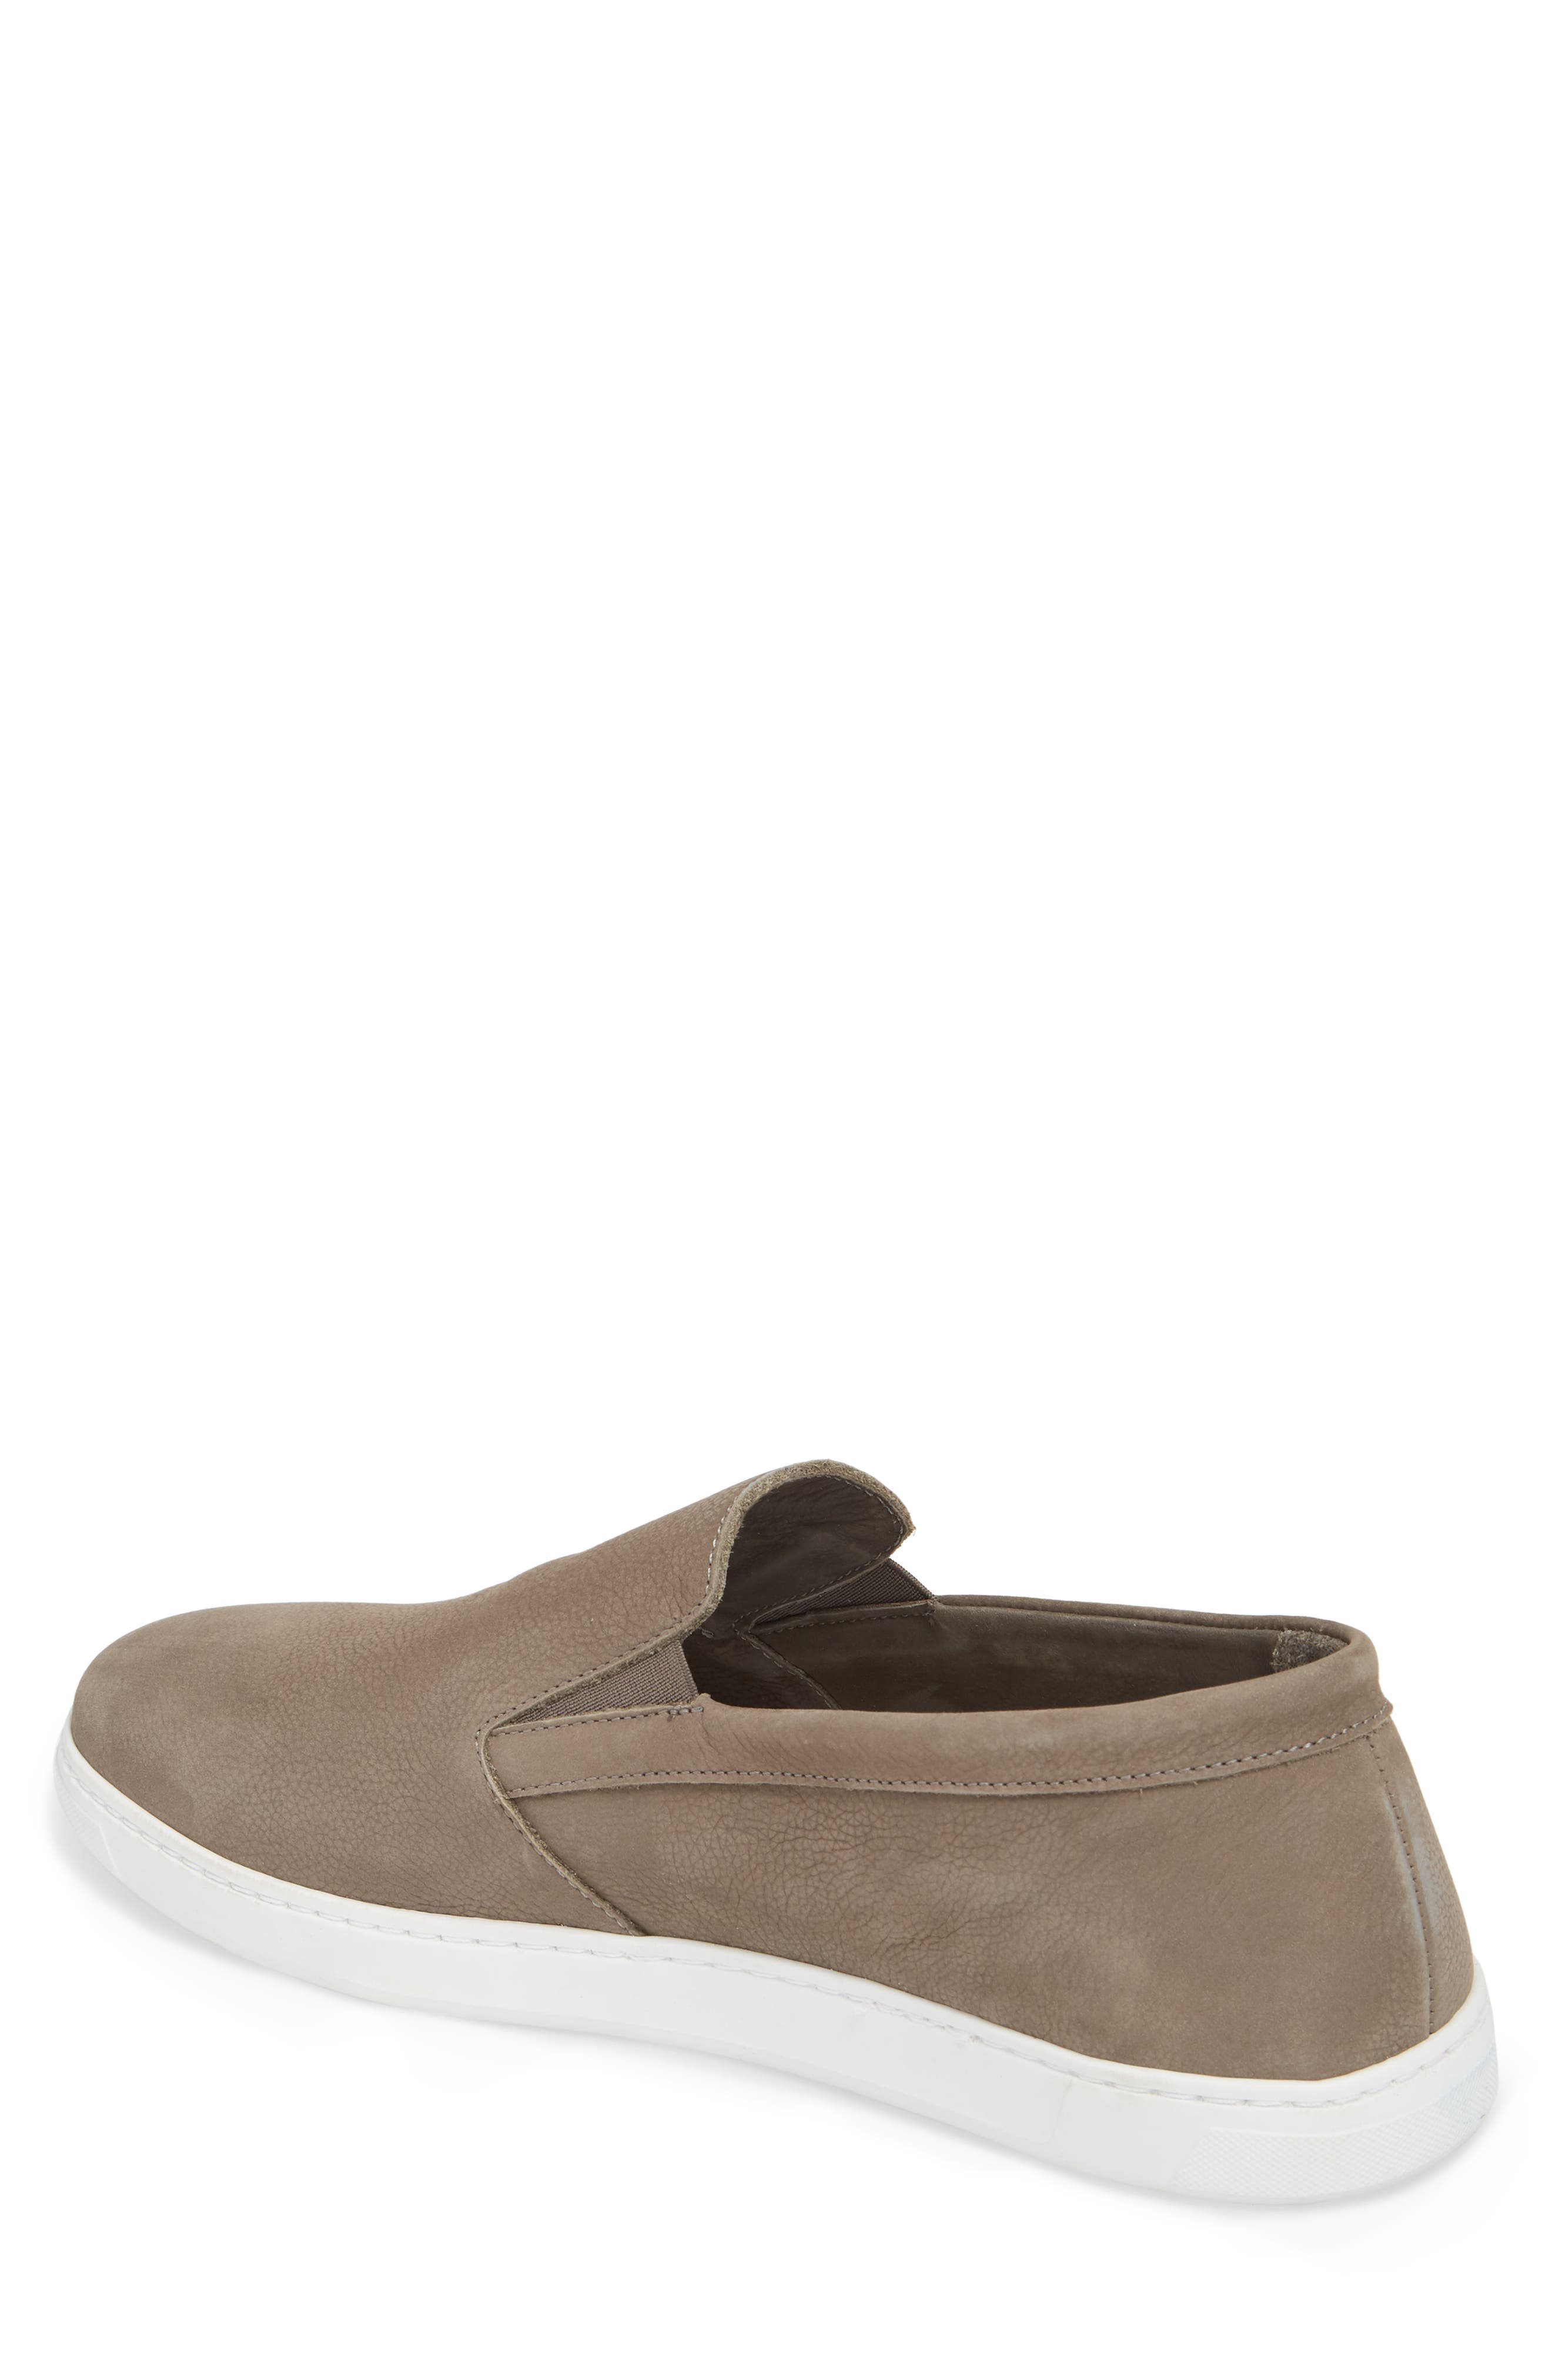 VINCE CAMUTO,                             Neff Slip-On Sneaker,                             Alternate thumbnail 2, color,                             DARK GREY LEATHER